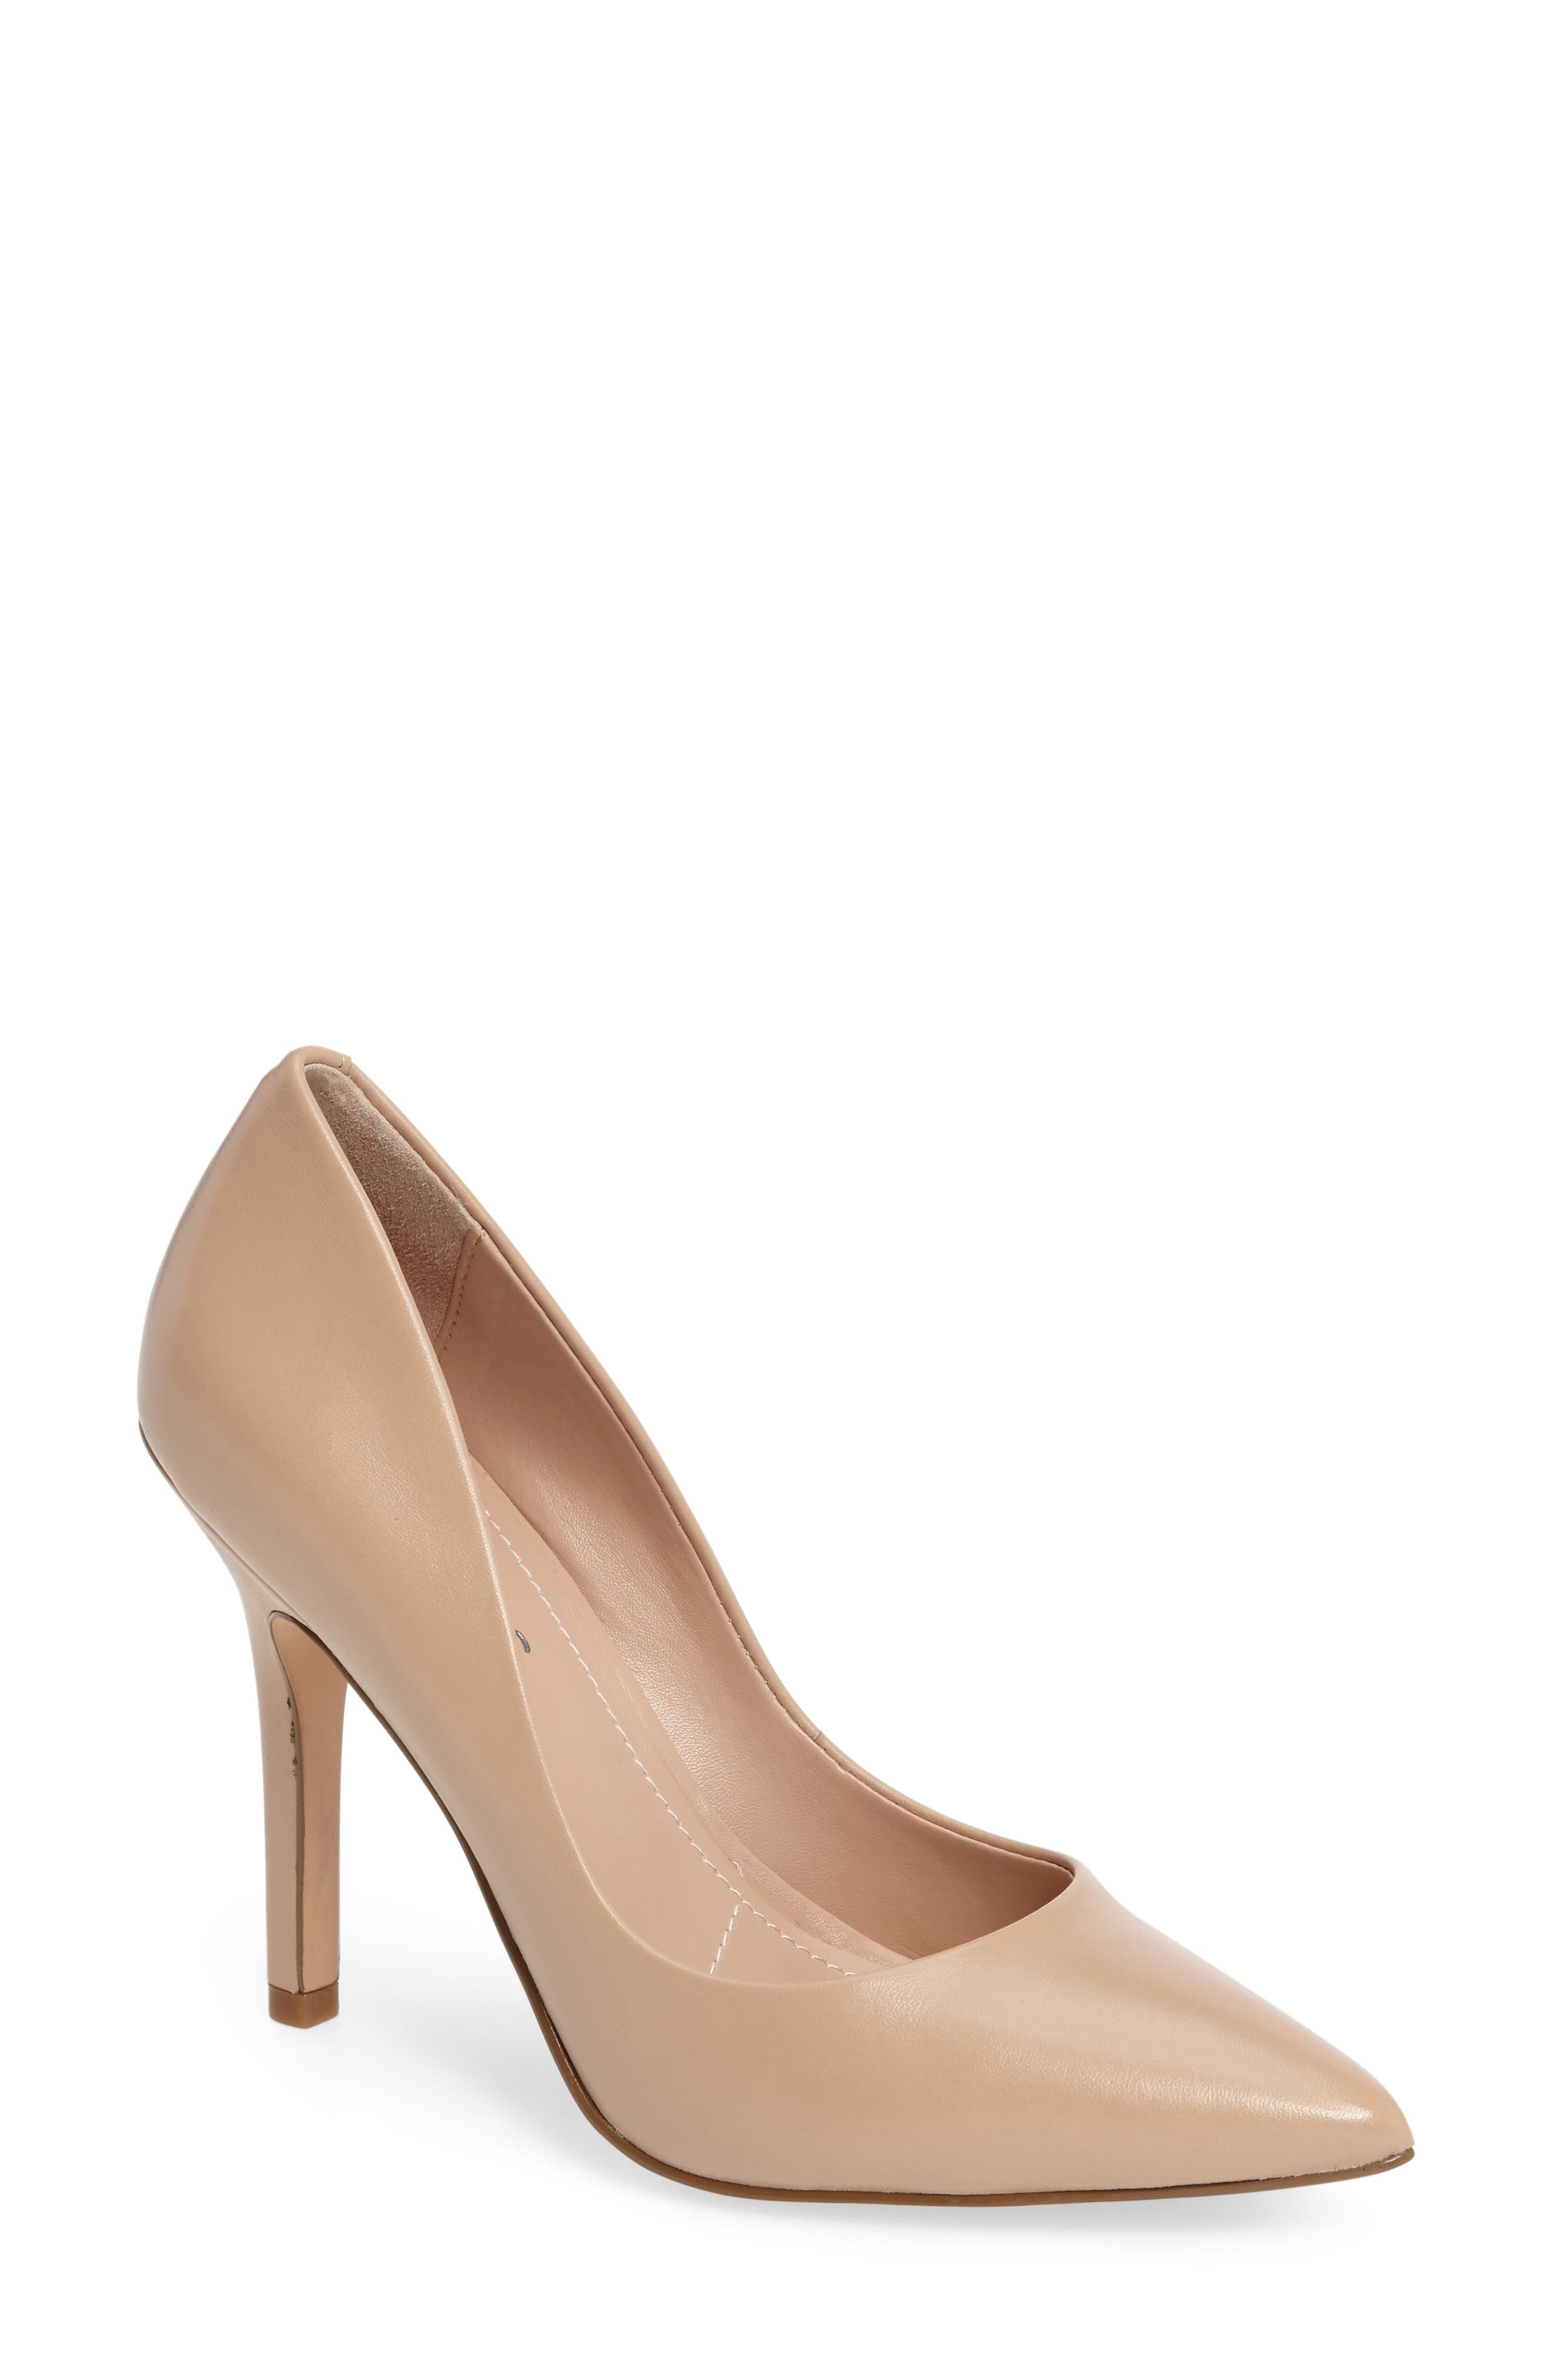 Alternate Image 1 Selected - Charles by Charles David Maxx Pointy Toe Pump (Women)